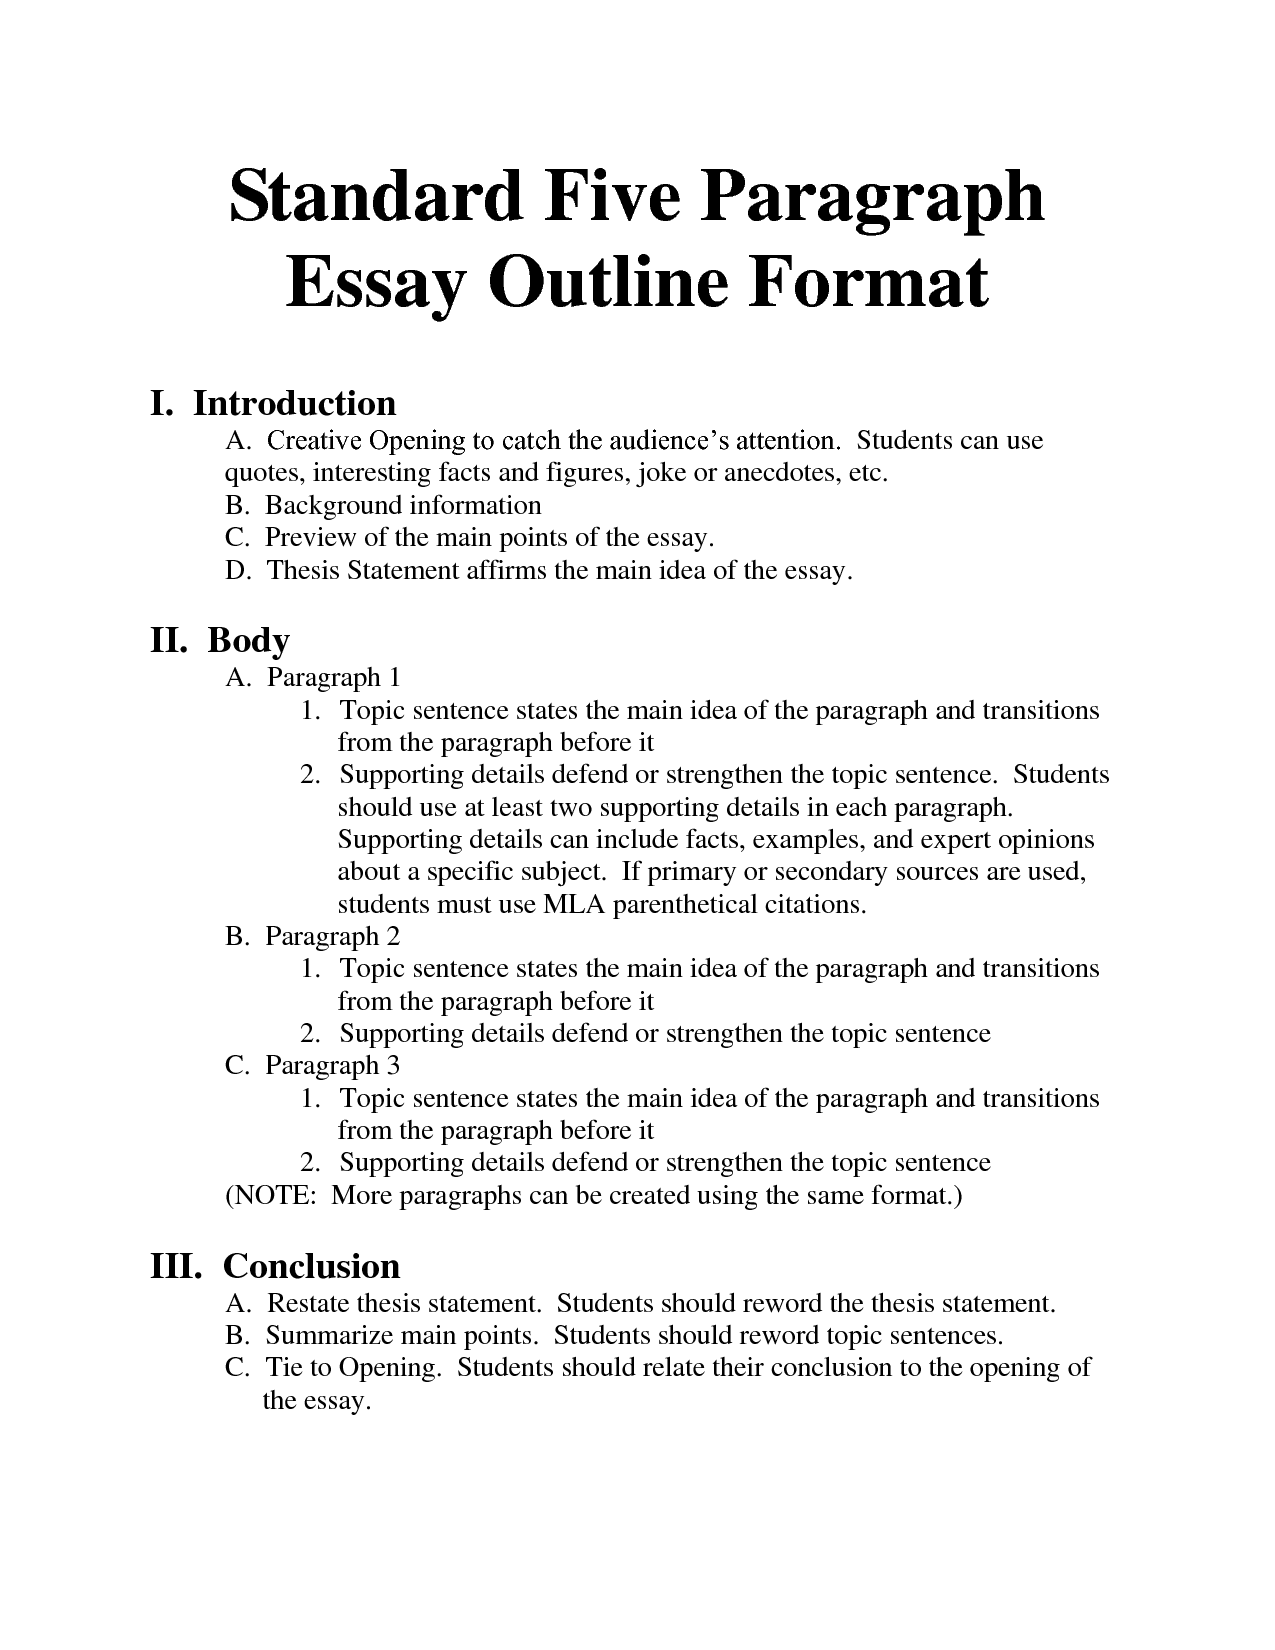 Format For Essay  Elitamydearestco Standard Essay Format Bing Images Essays Homeschool Pinterest